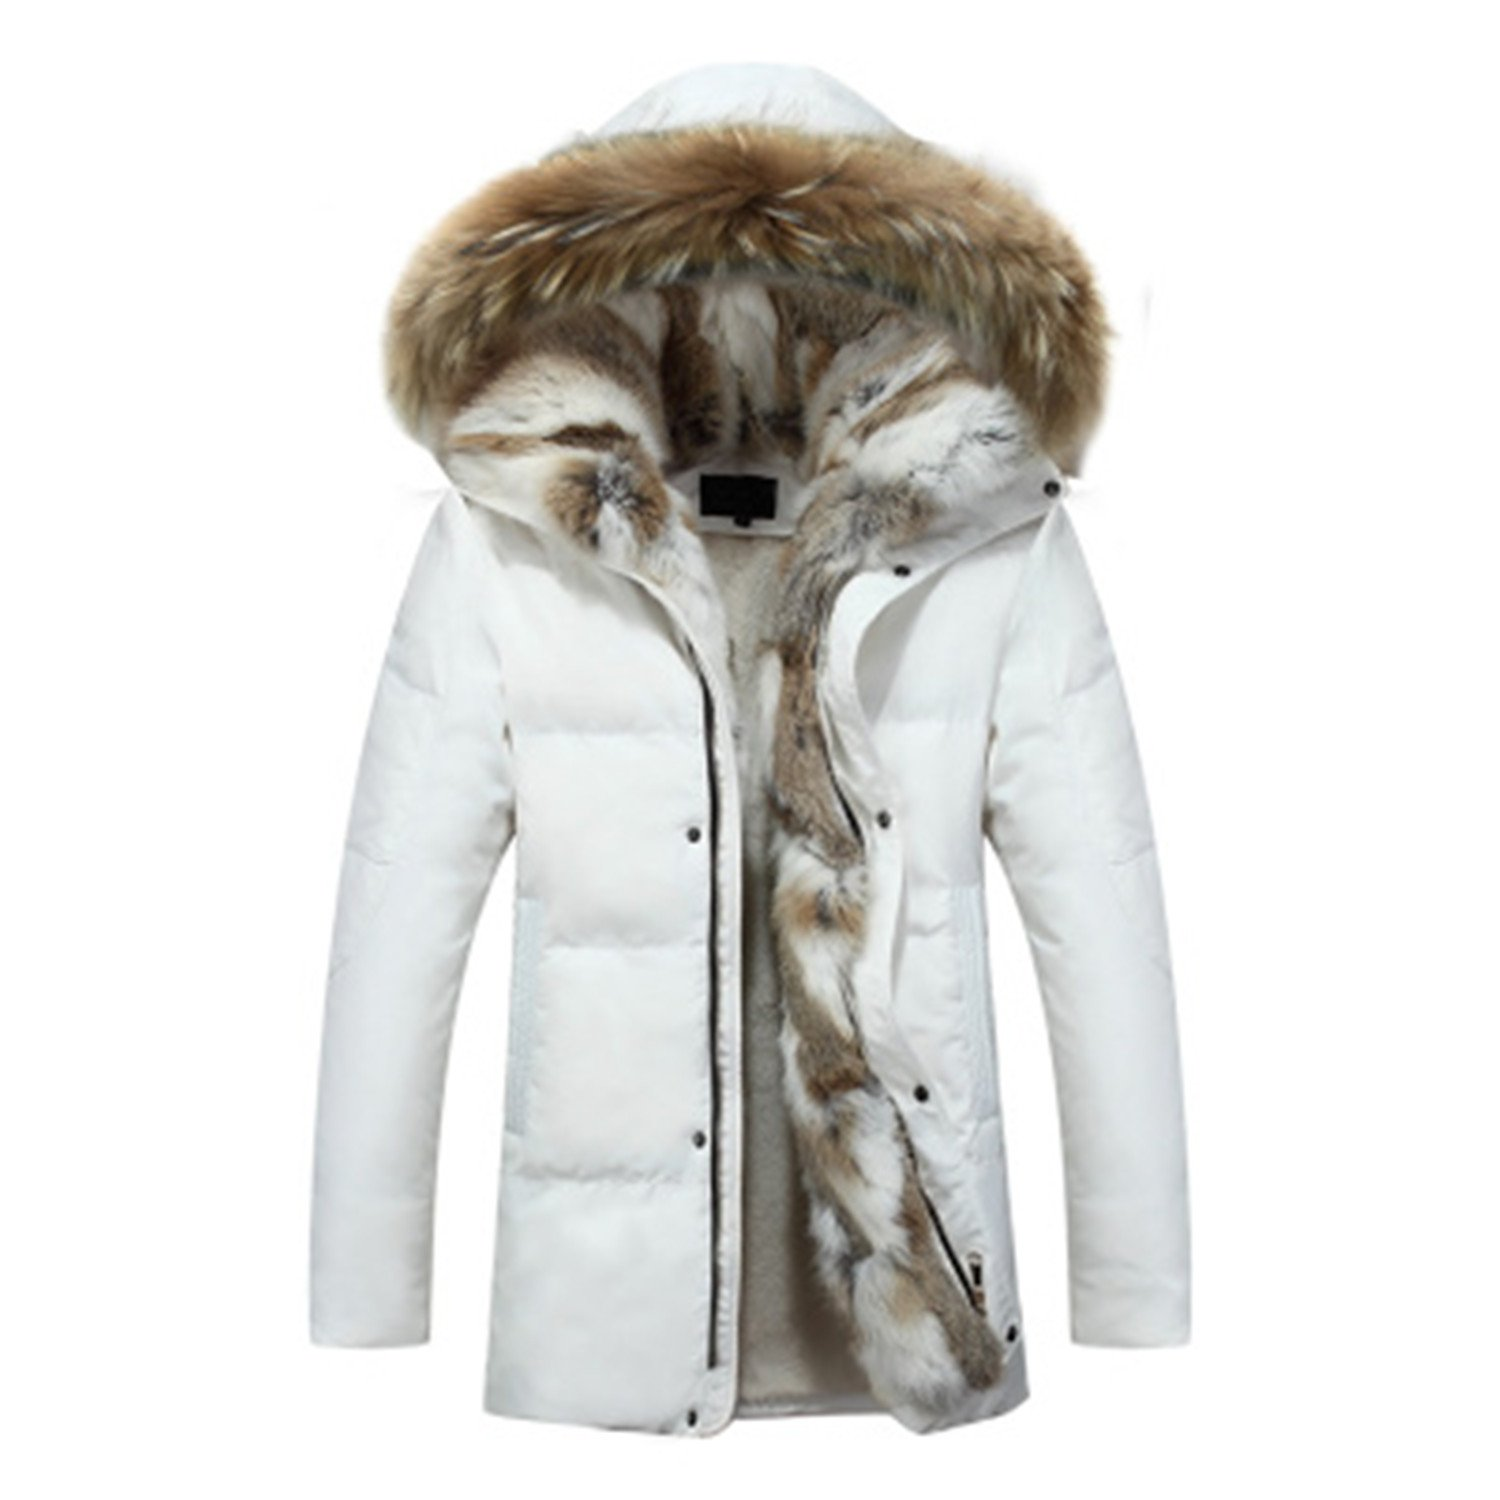 Also Easy Men's and Women's Leisure Down Jacket Thick Hood Detached Warm Waterproof Big Raccoon Fur Collar For -30 degrees White L